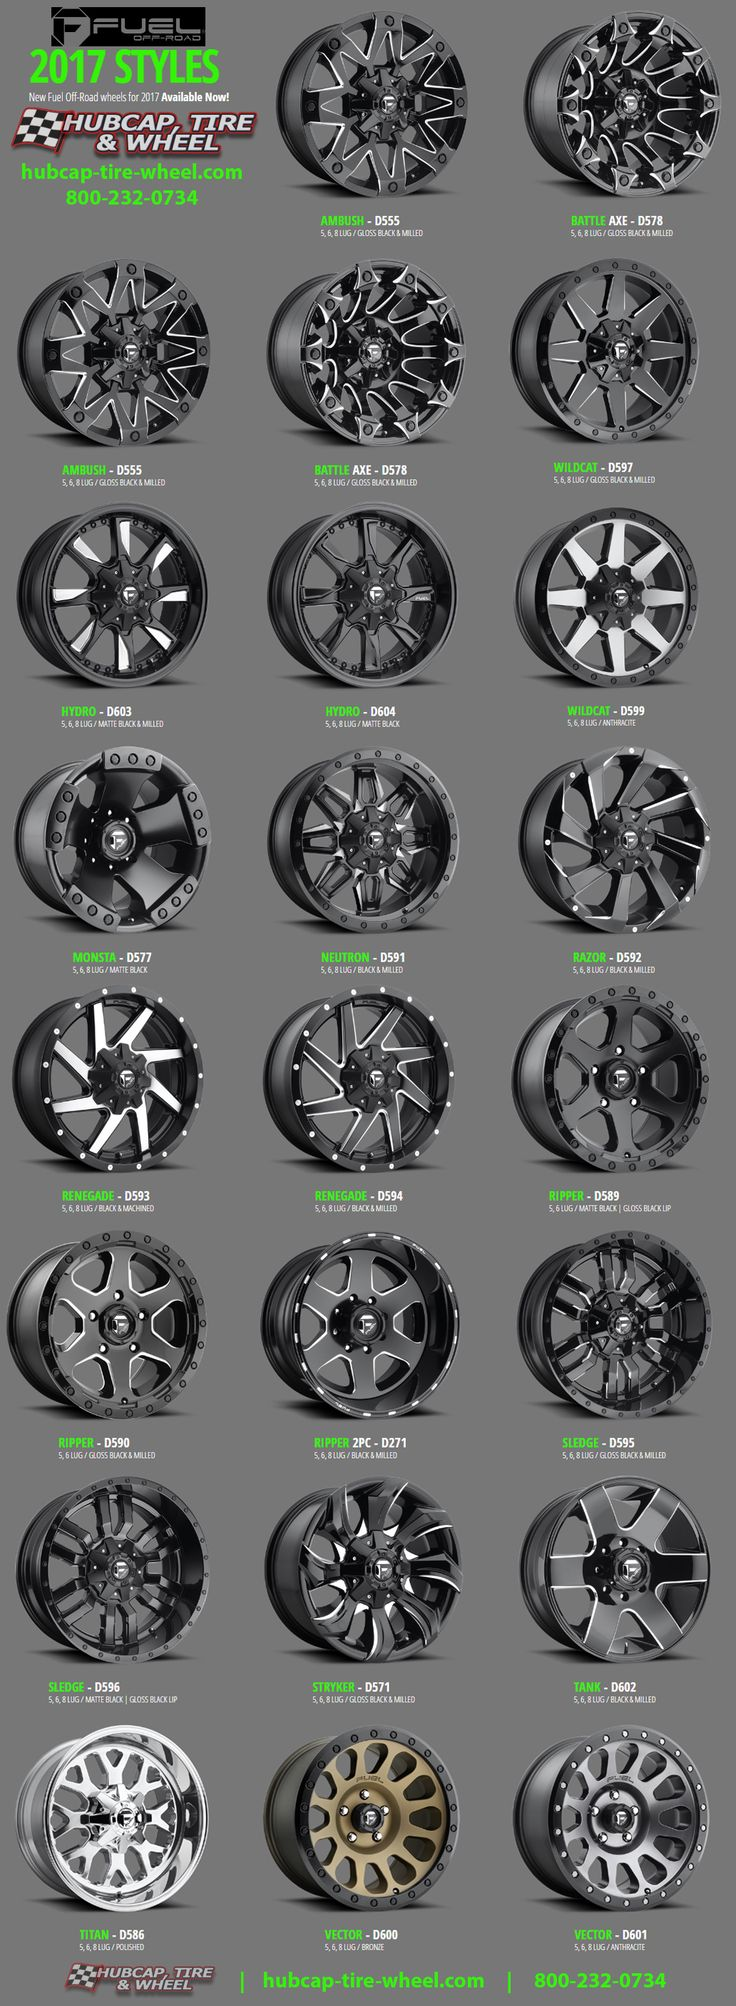 2017 Fuel Off-Road Wheels & Rims - For Jeeps, Trucks, SUV's